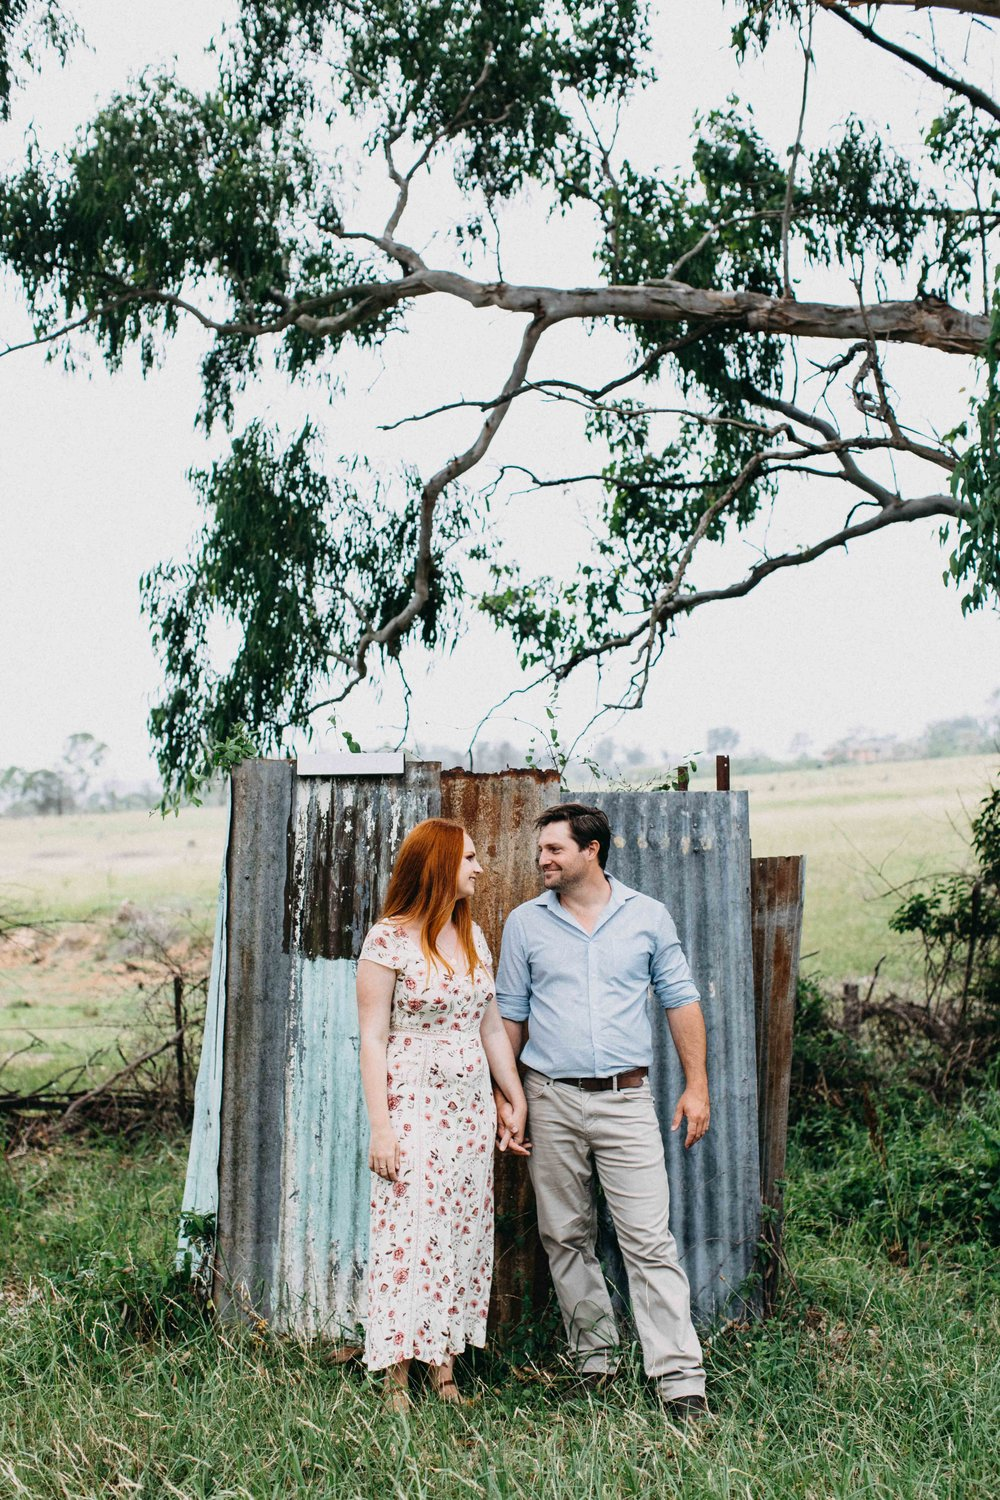 camden-engagement-session-wollondilly-photography-nadine-bernard-24.jpg